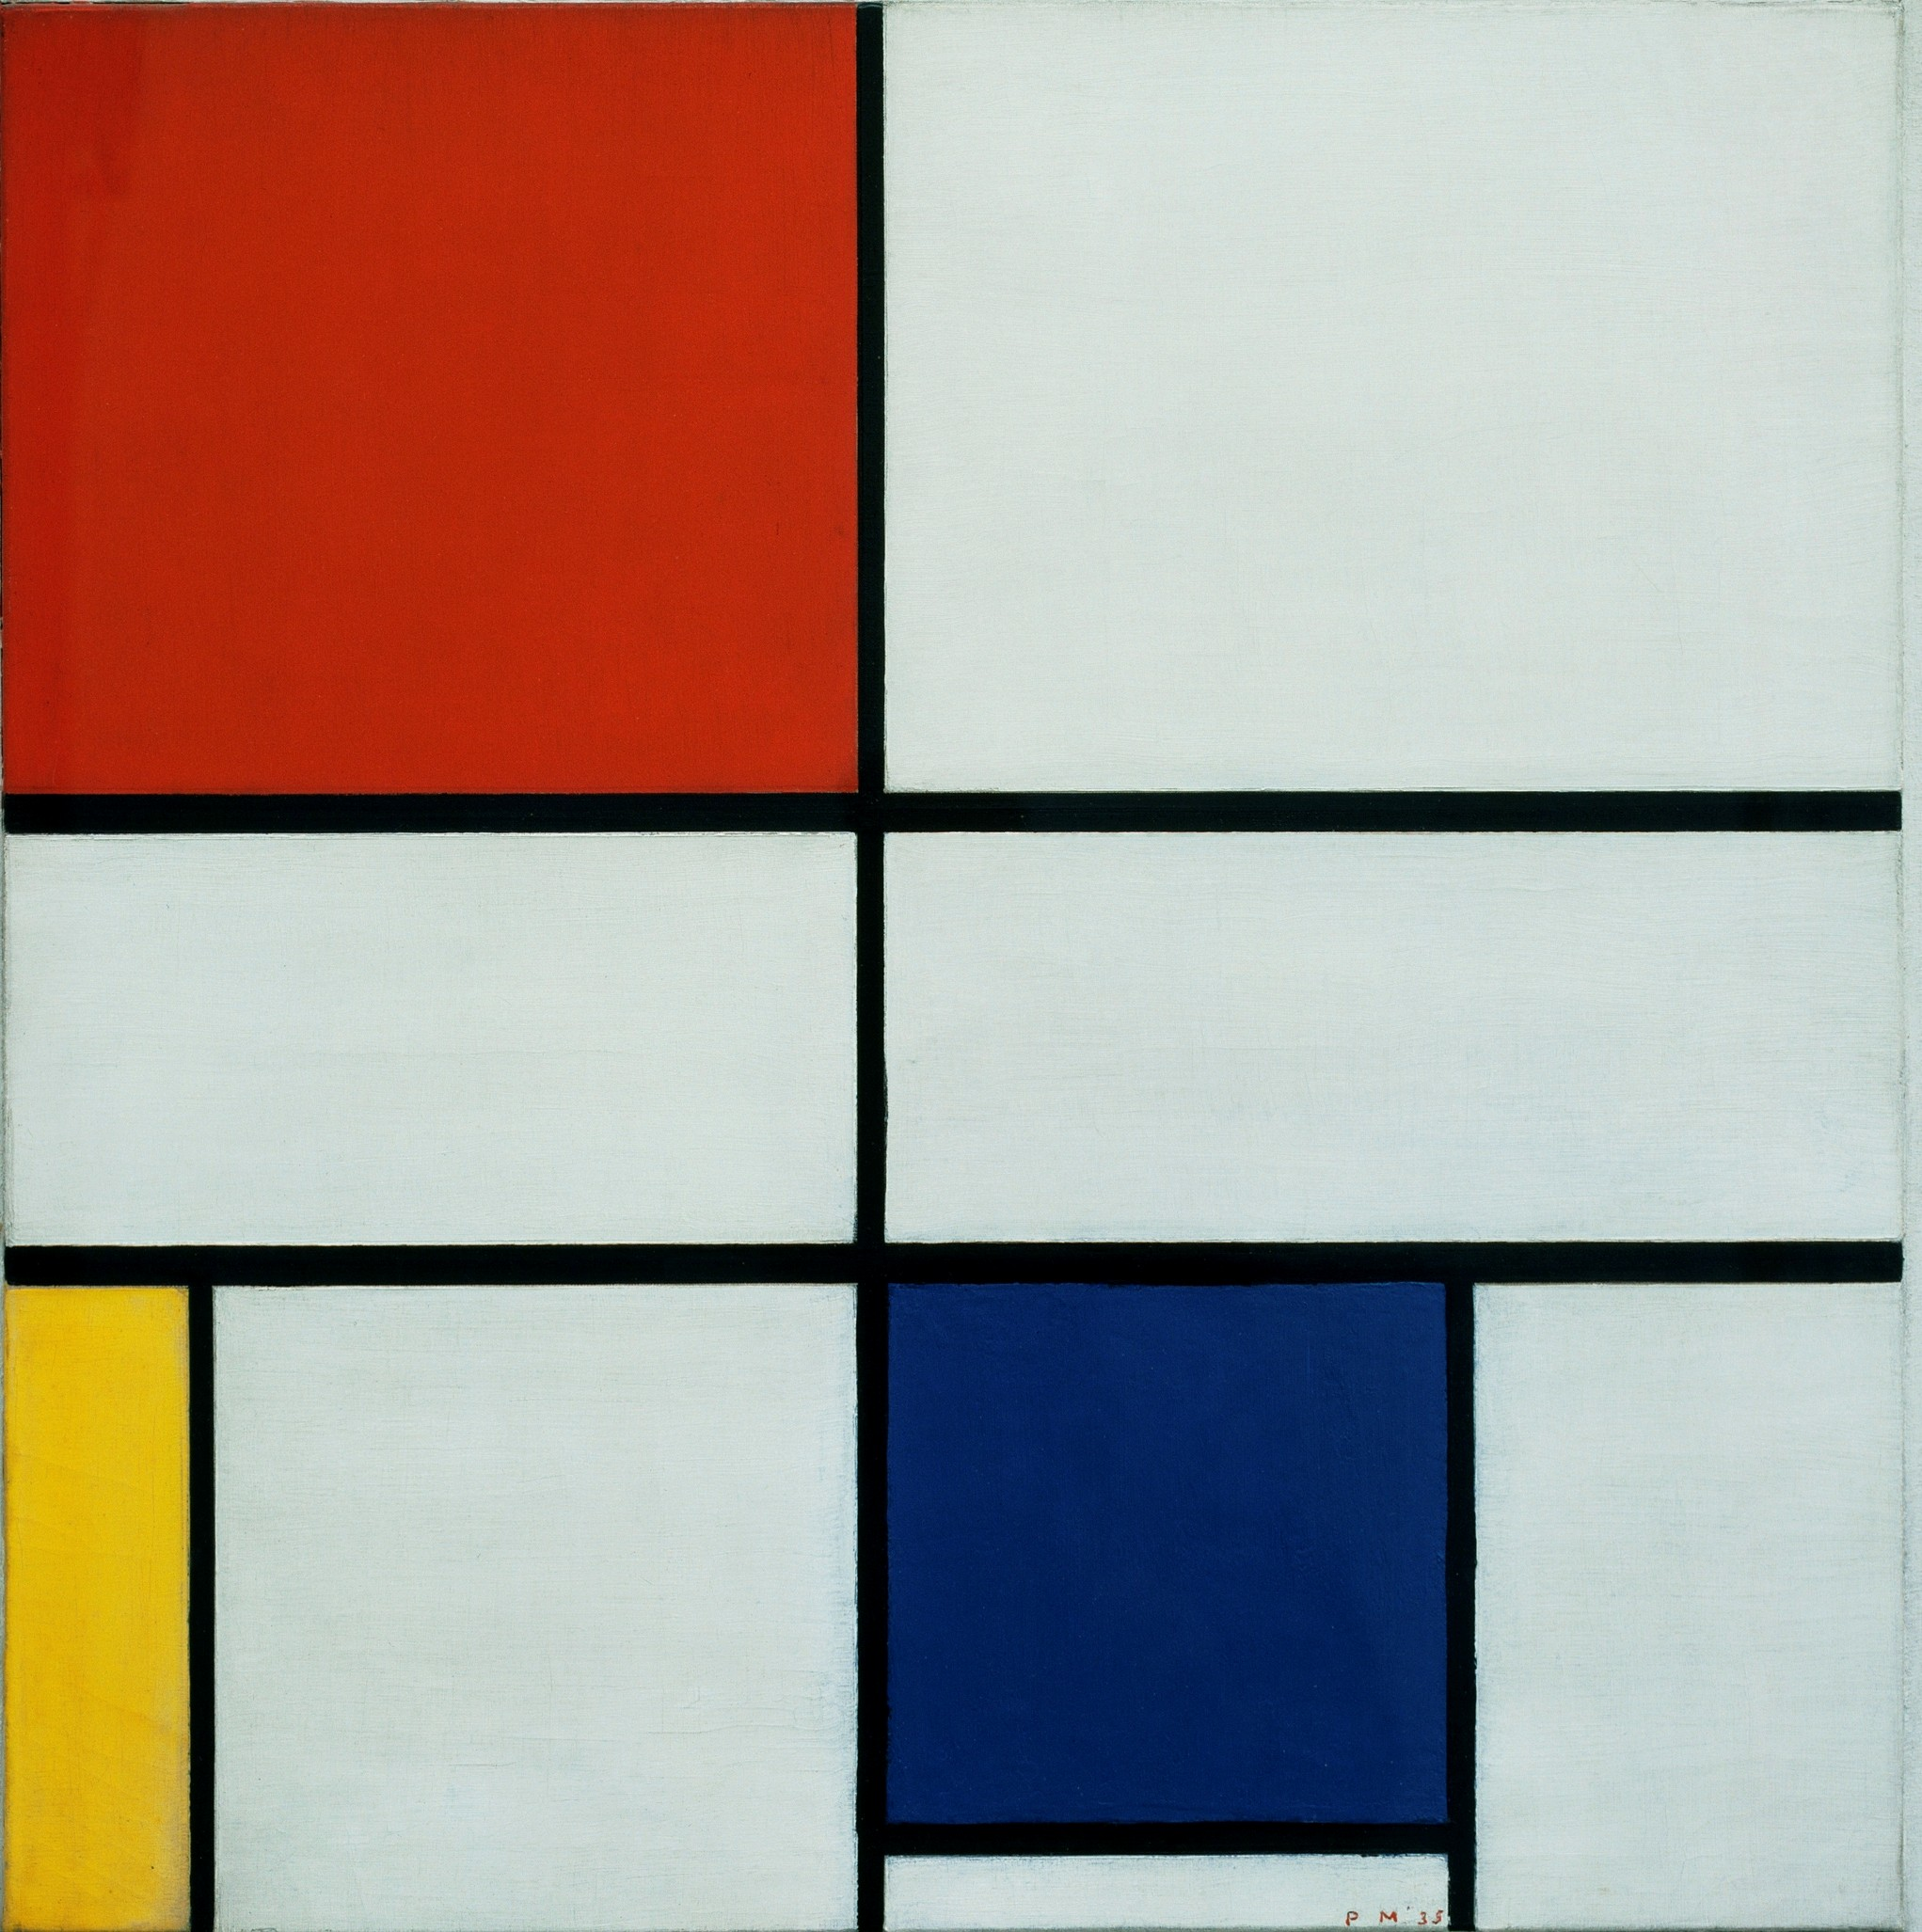 6-mondrian-composition-c-no-iii-with-red-yellow-and-blue-1935